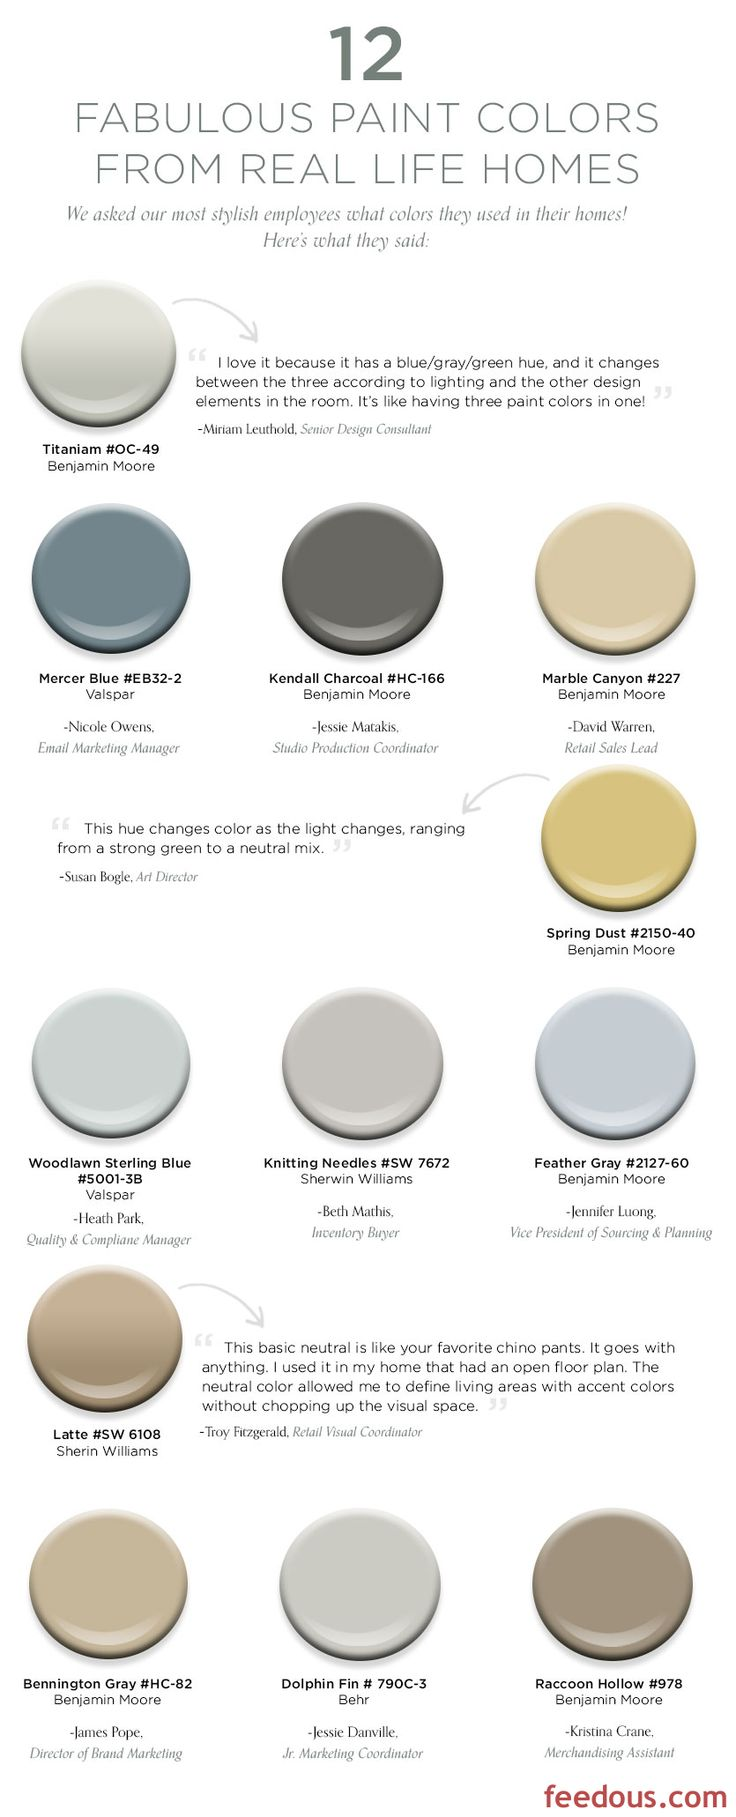 12 Paint Colors We've Tested And Loved! - http://www.feedous.com/interior-design/12-paint-colors-weve-tested-and-loved.html